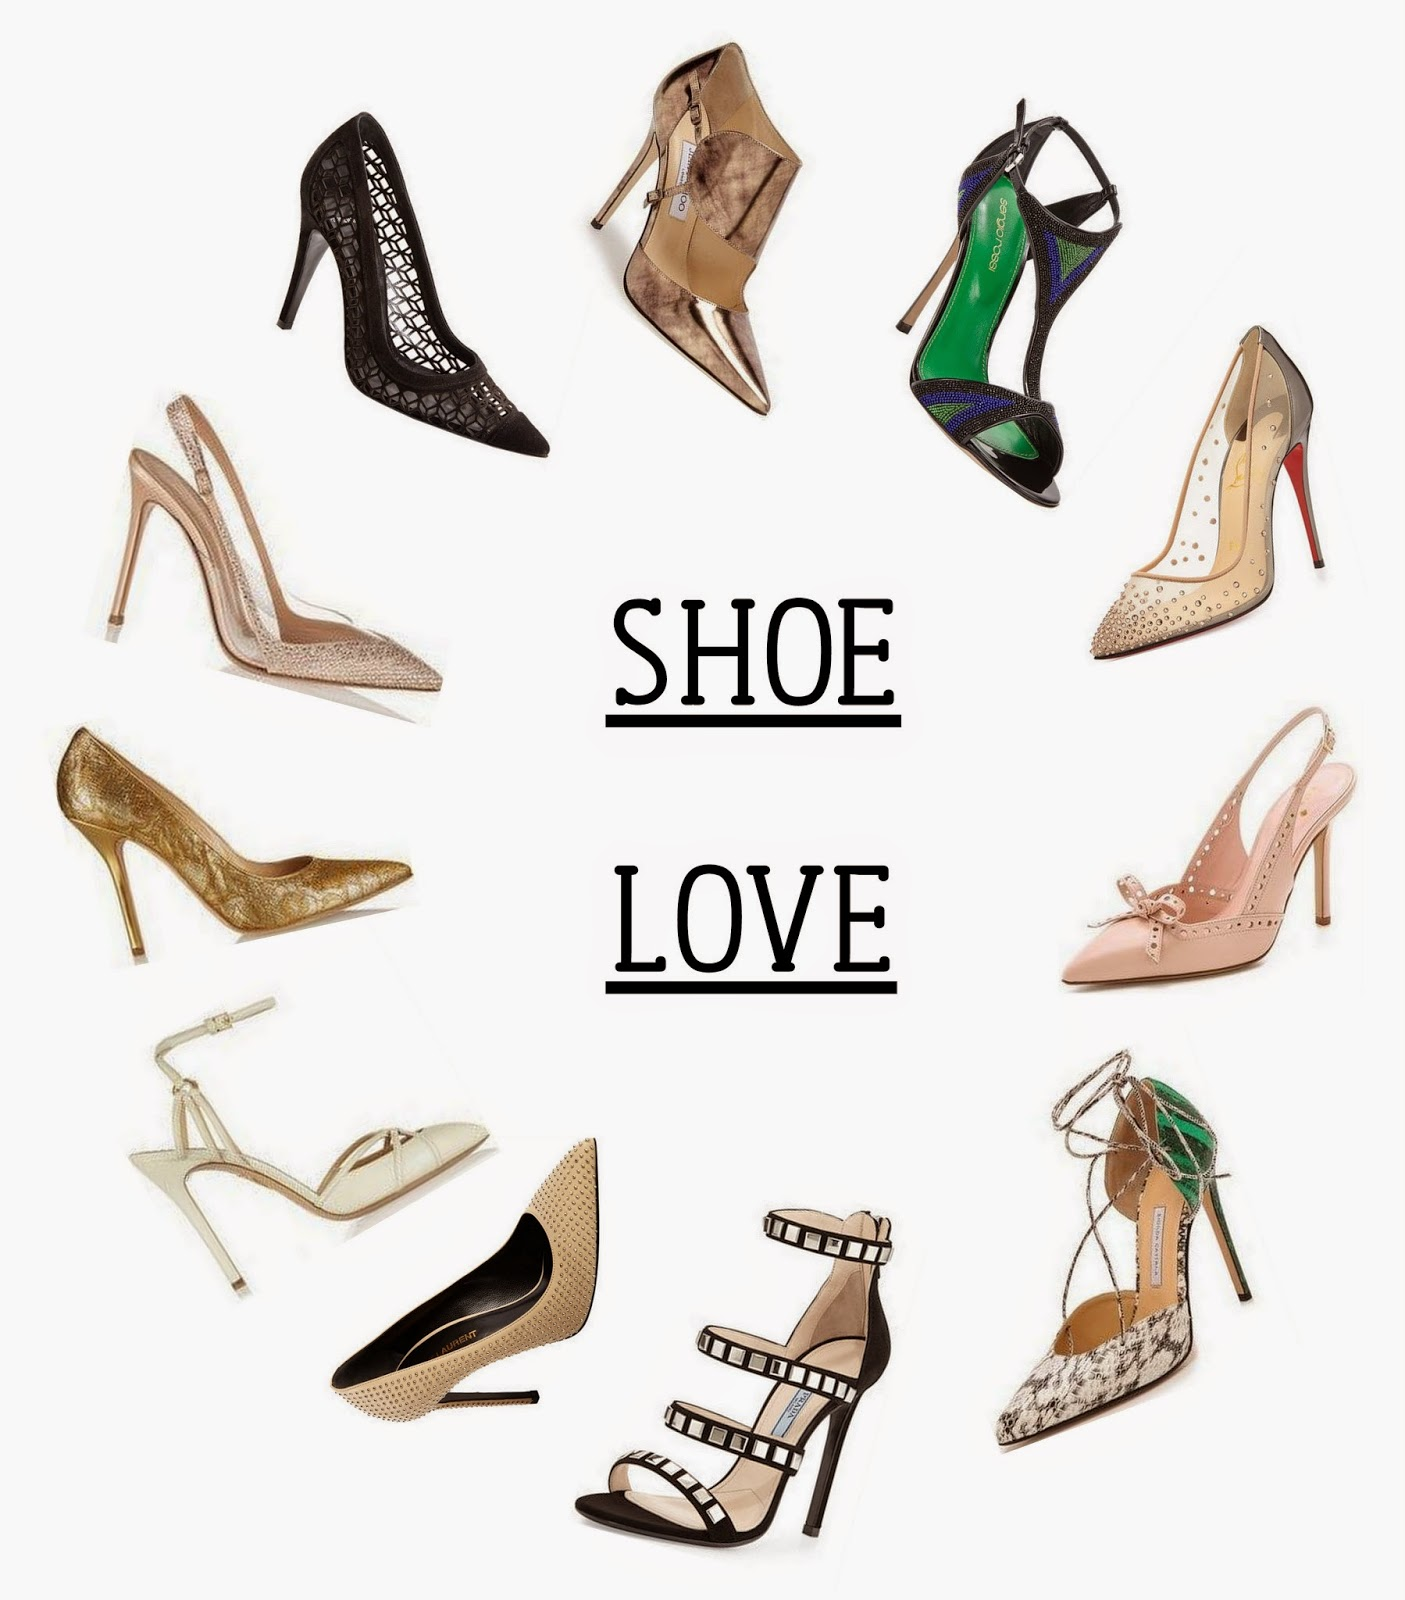 Louboutin christian shoes collage